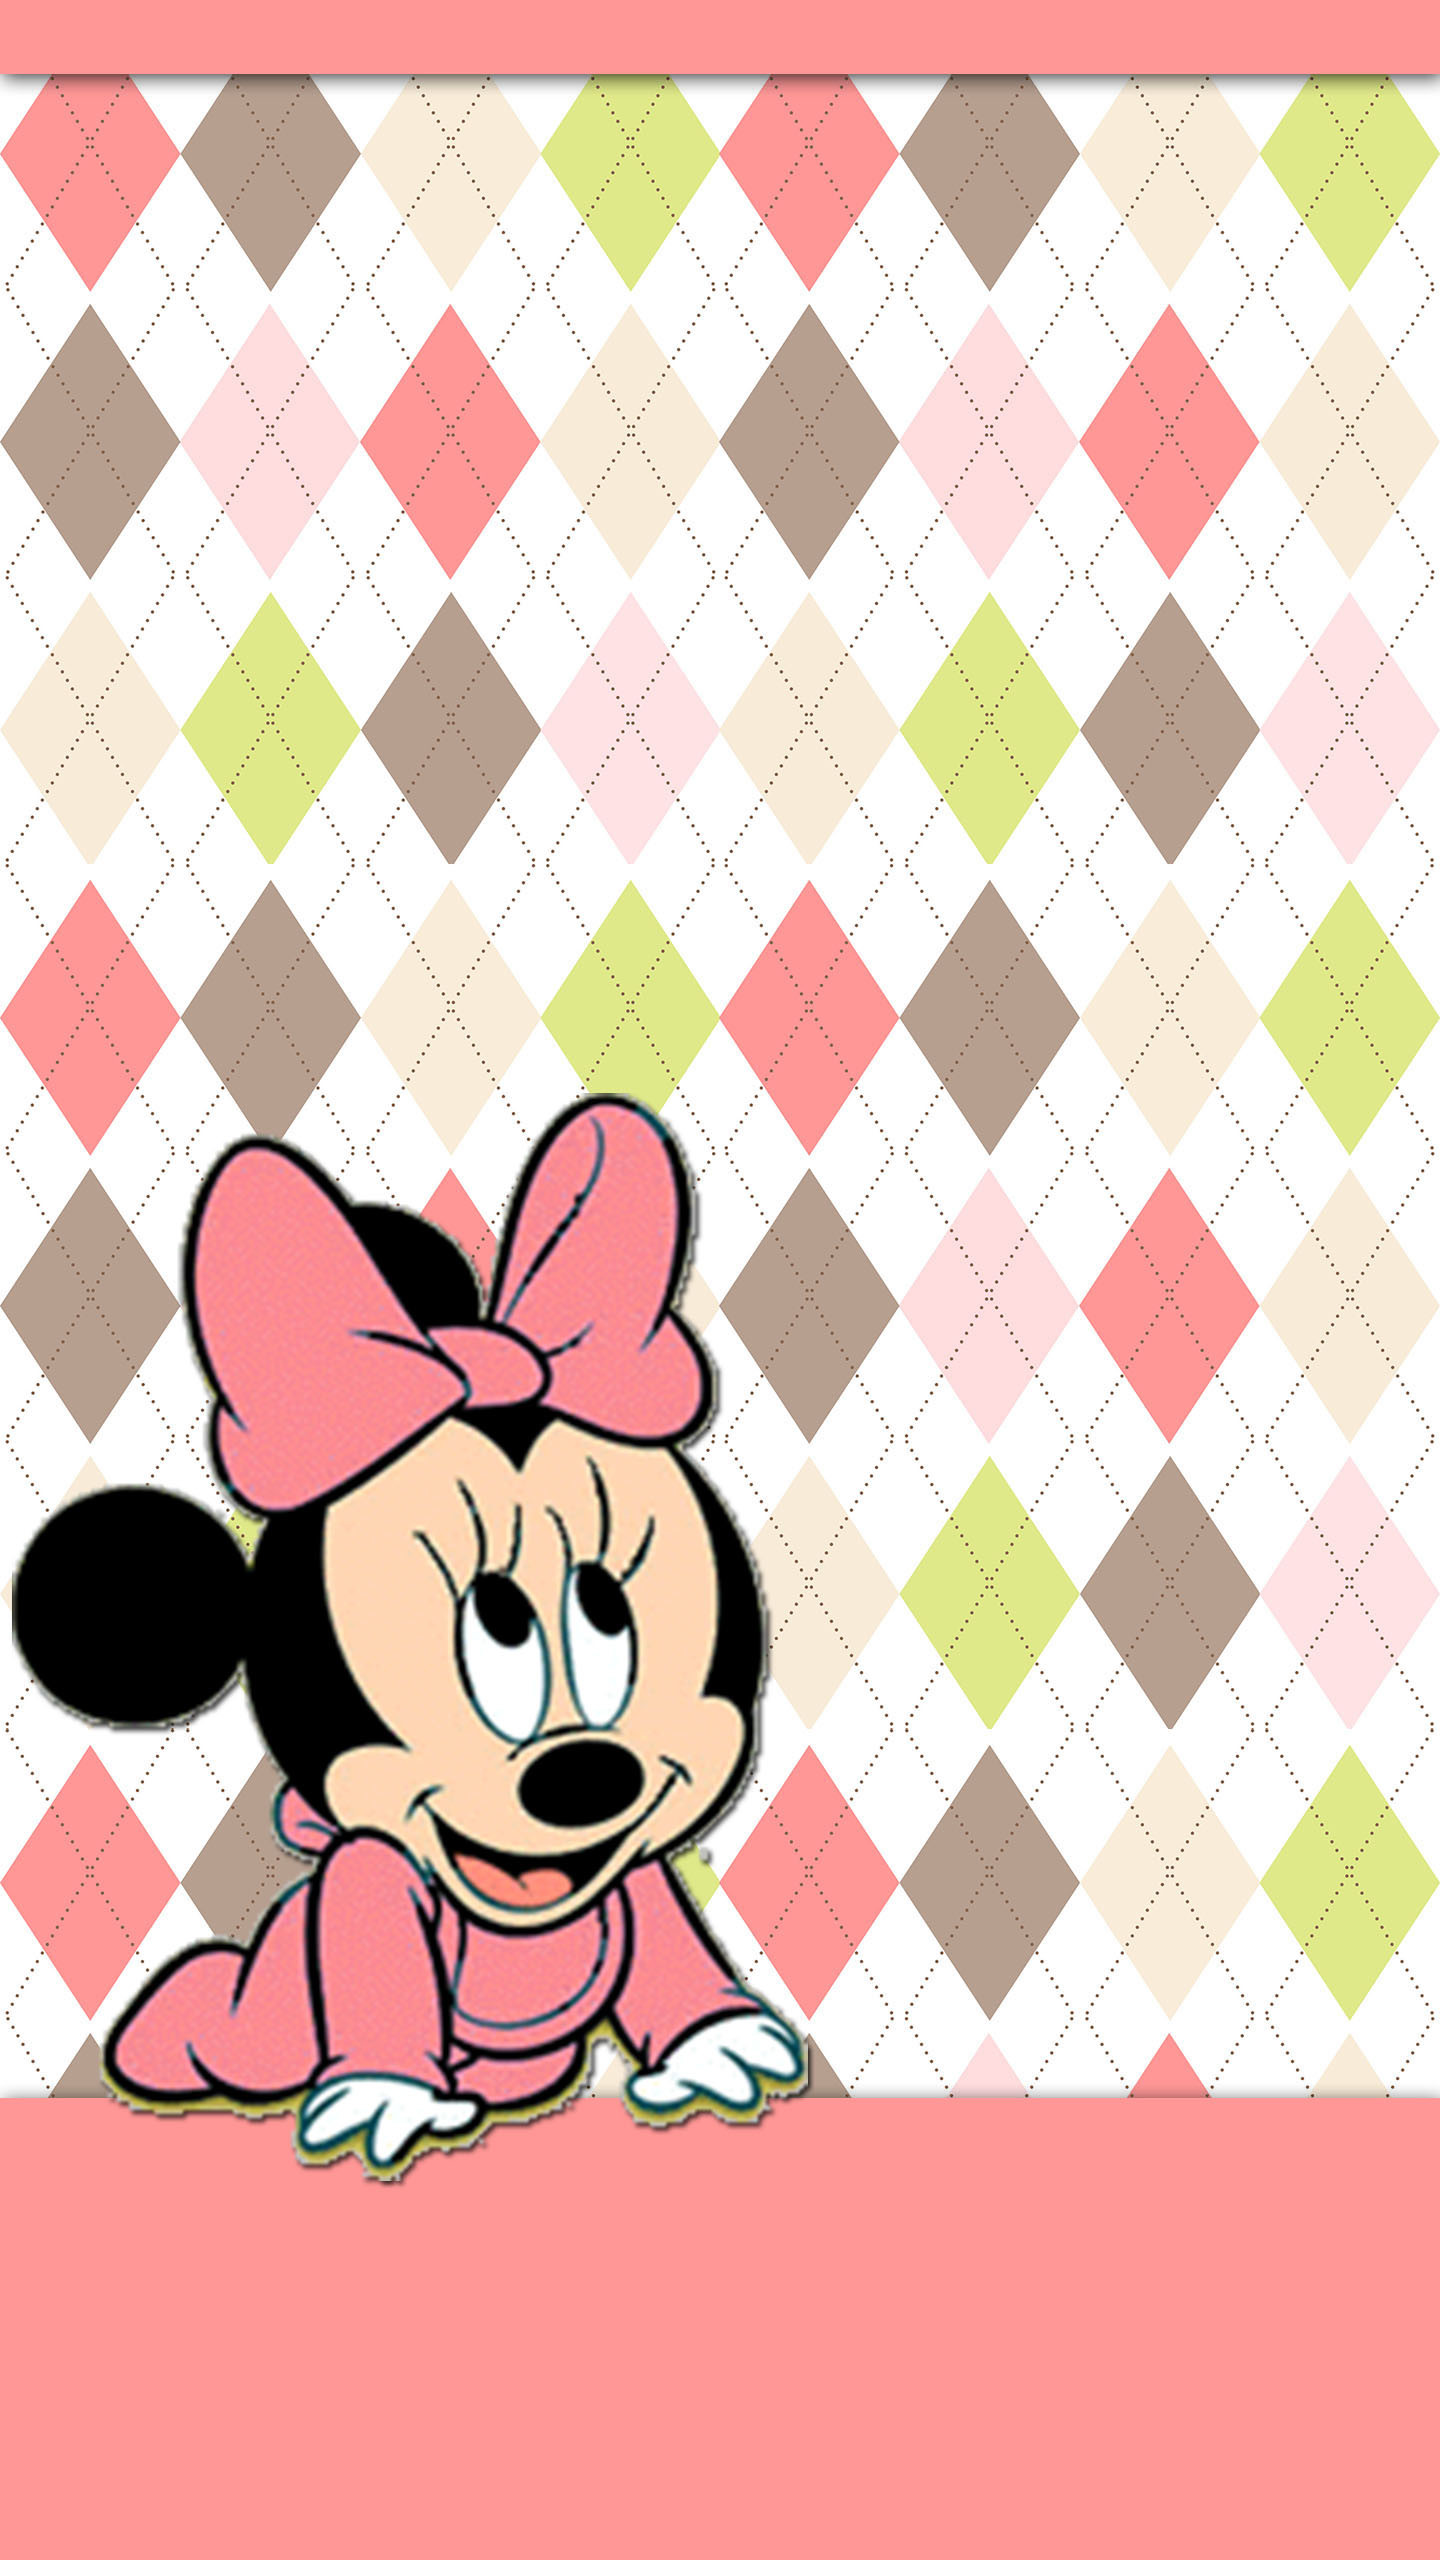 1440x2560 BABY MINNIE MOUSE IPHONE WALLPAPER BACKGROUND · Cute WallpapersWallpaper  BackgroundsIphone WallpapersDisney ...